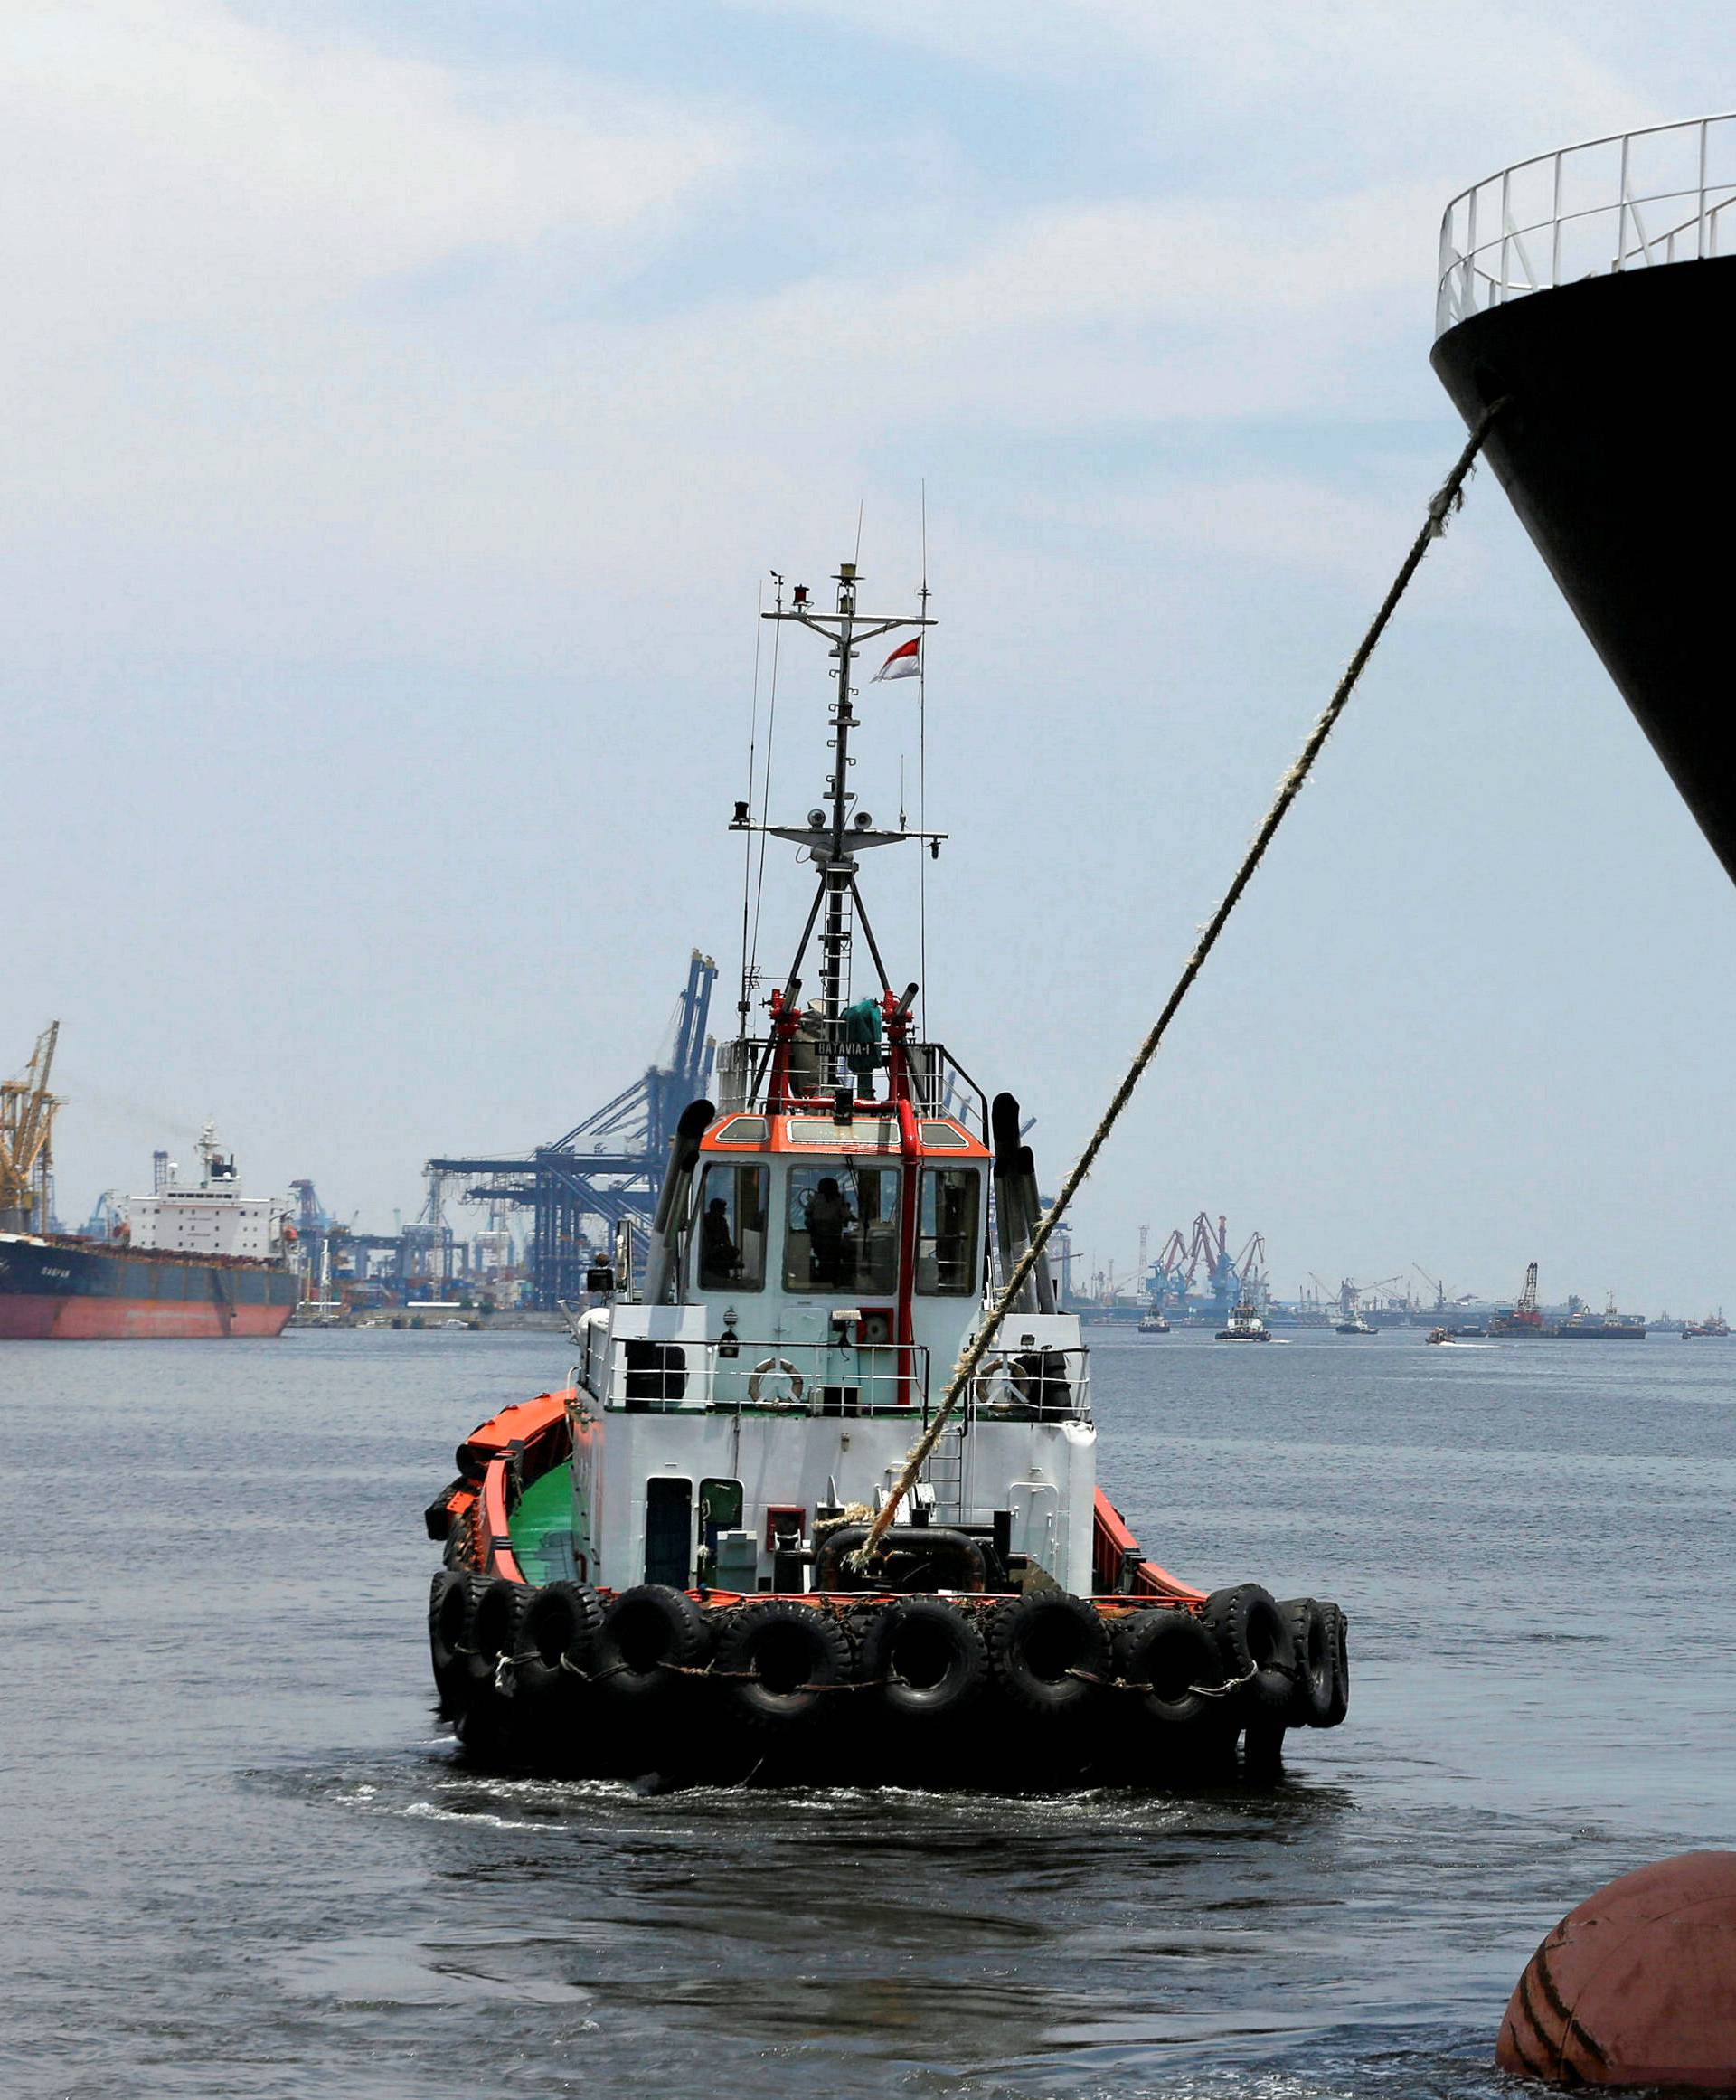 A cargo ship is towed in by a tugboat in Tanjung Priok Port, Jakarta, Indonesia